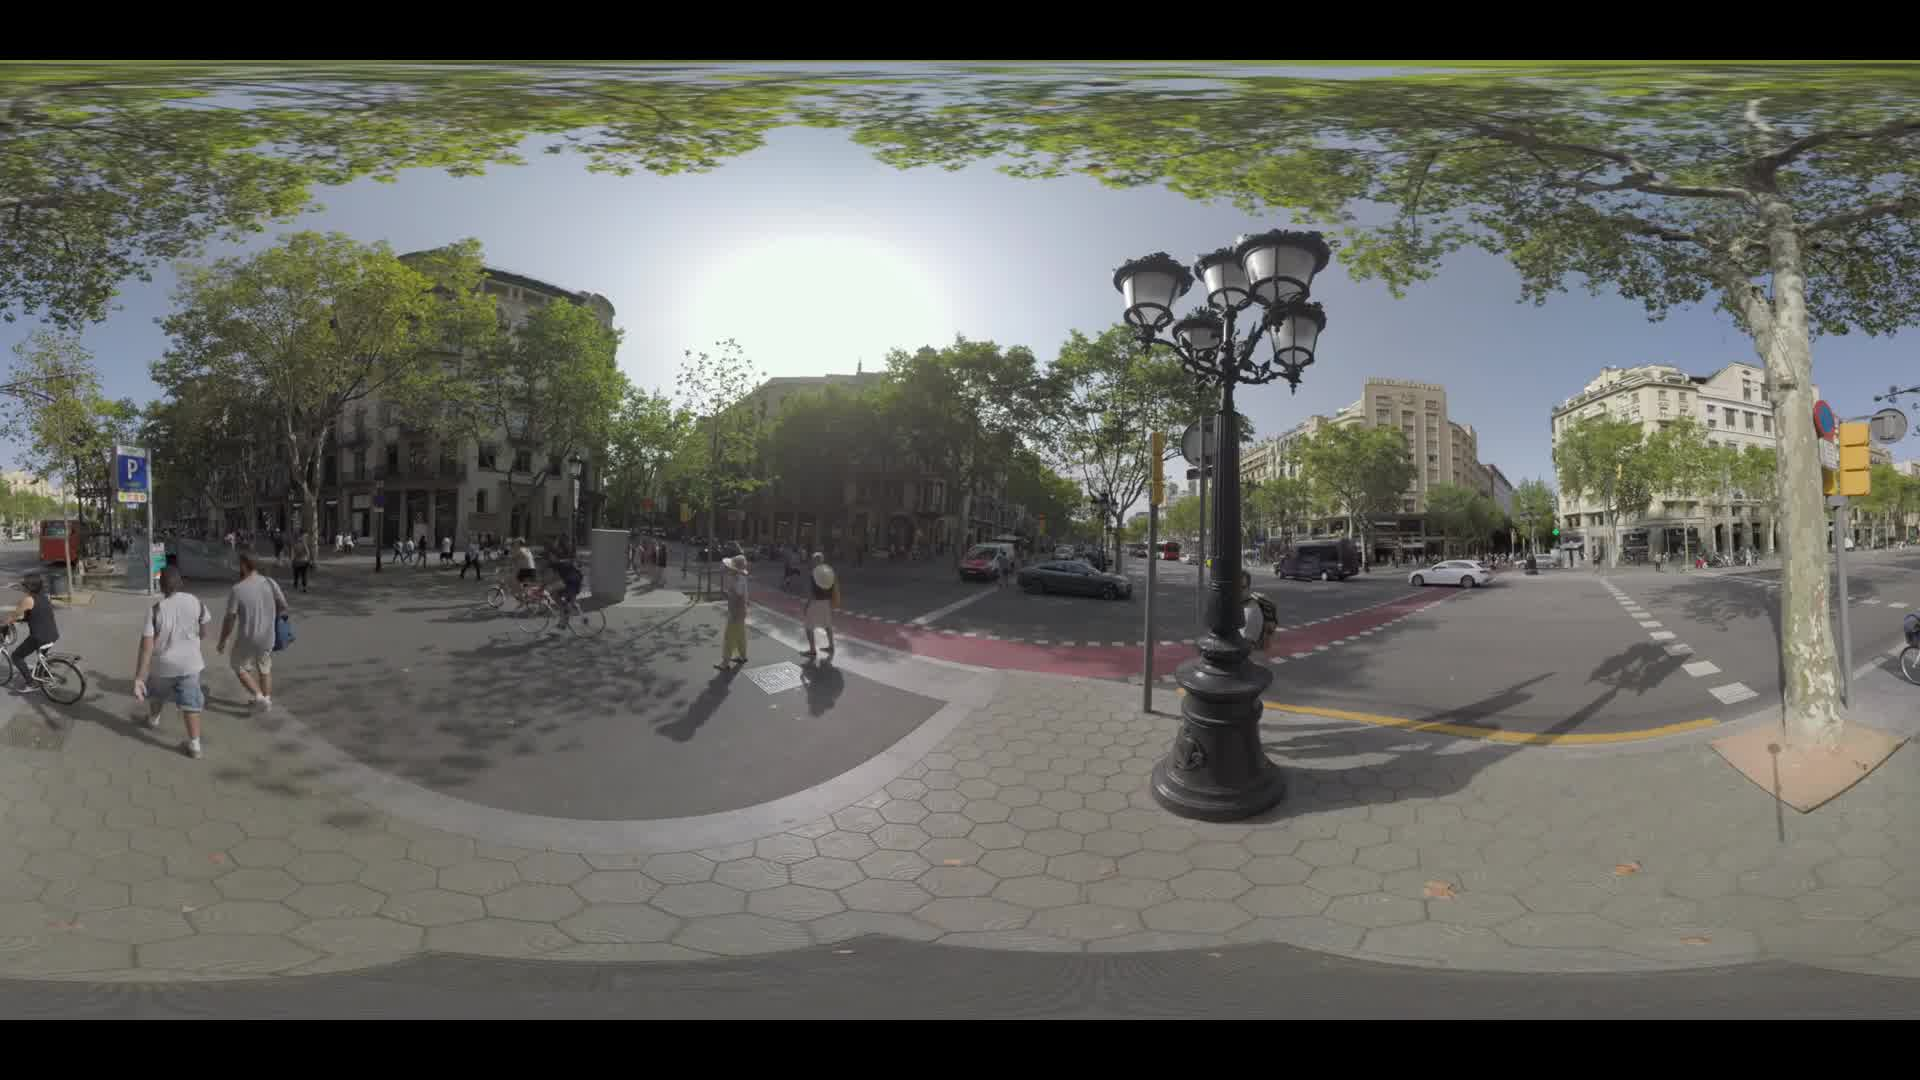 BARCELONA, SPAIN - JULY 29, 2016: 360 VR video. Transport traffic on busy junction in the city. People walking on sidewalks and crossing the roads. Cyclists using bike lanes